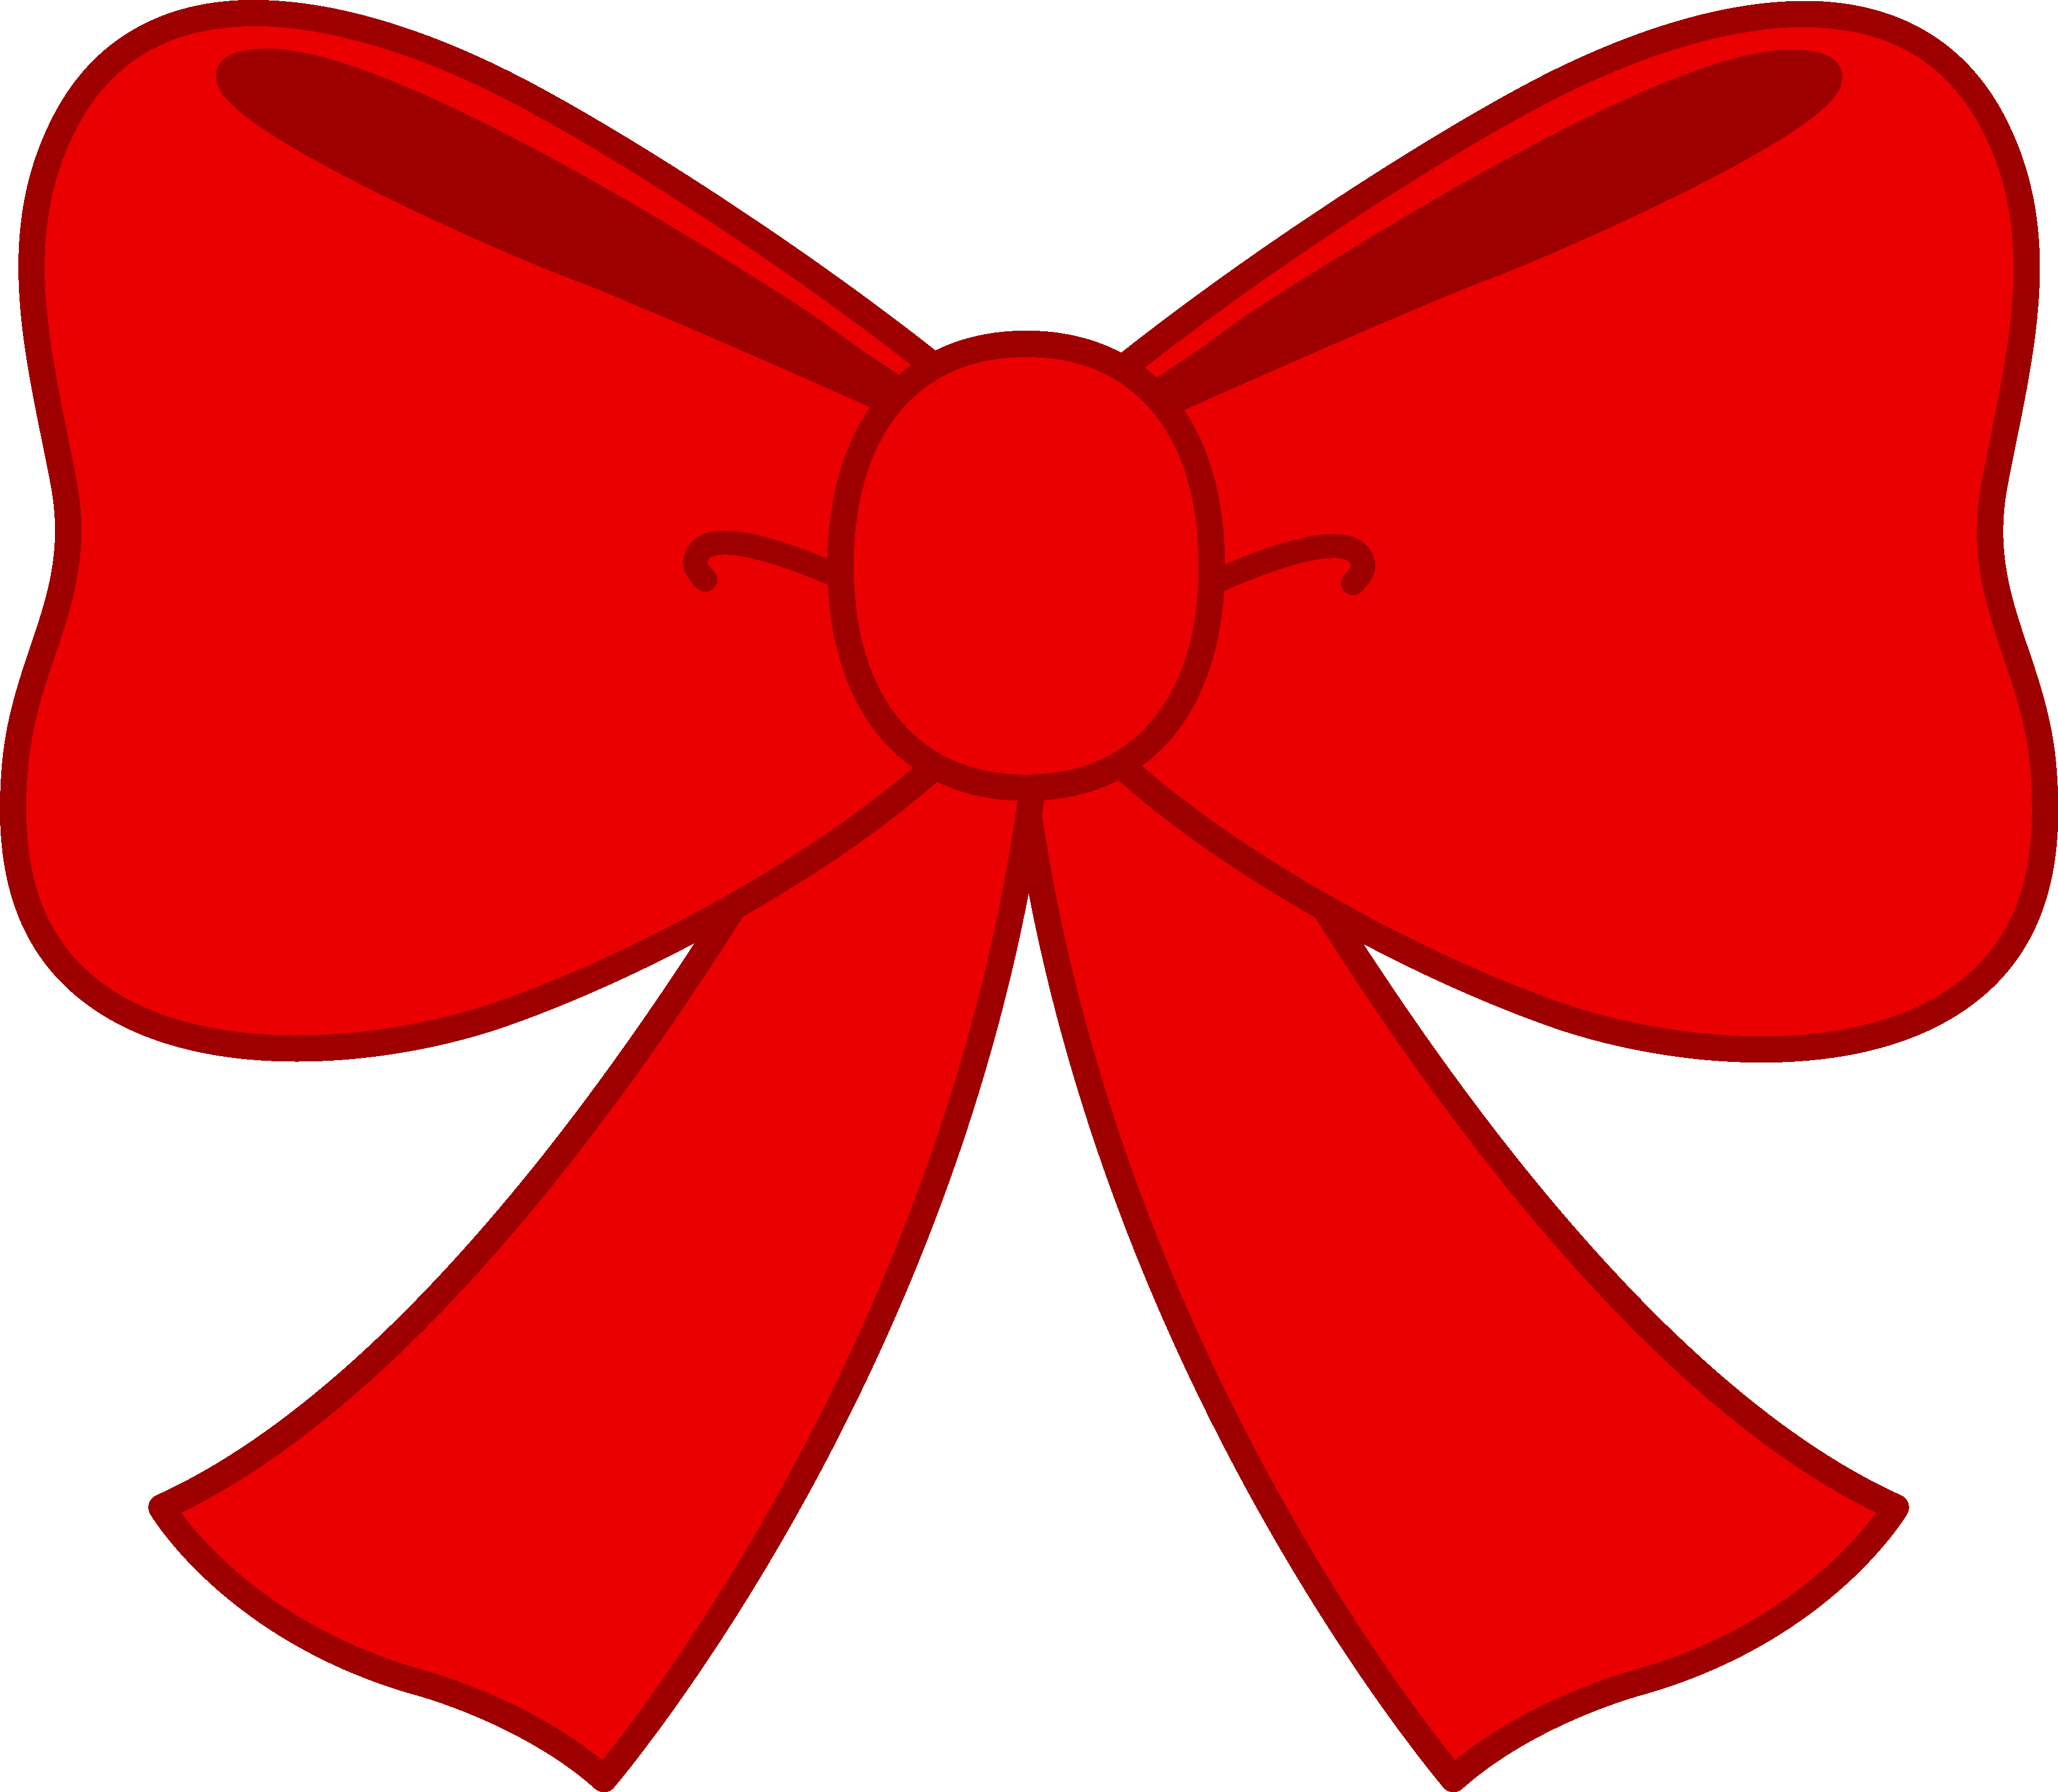 Red Hair clipart red bow #1